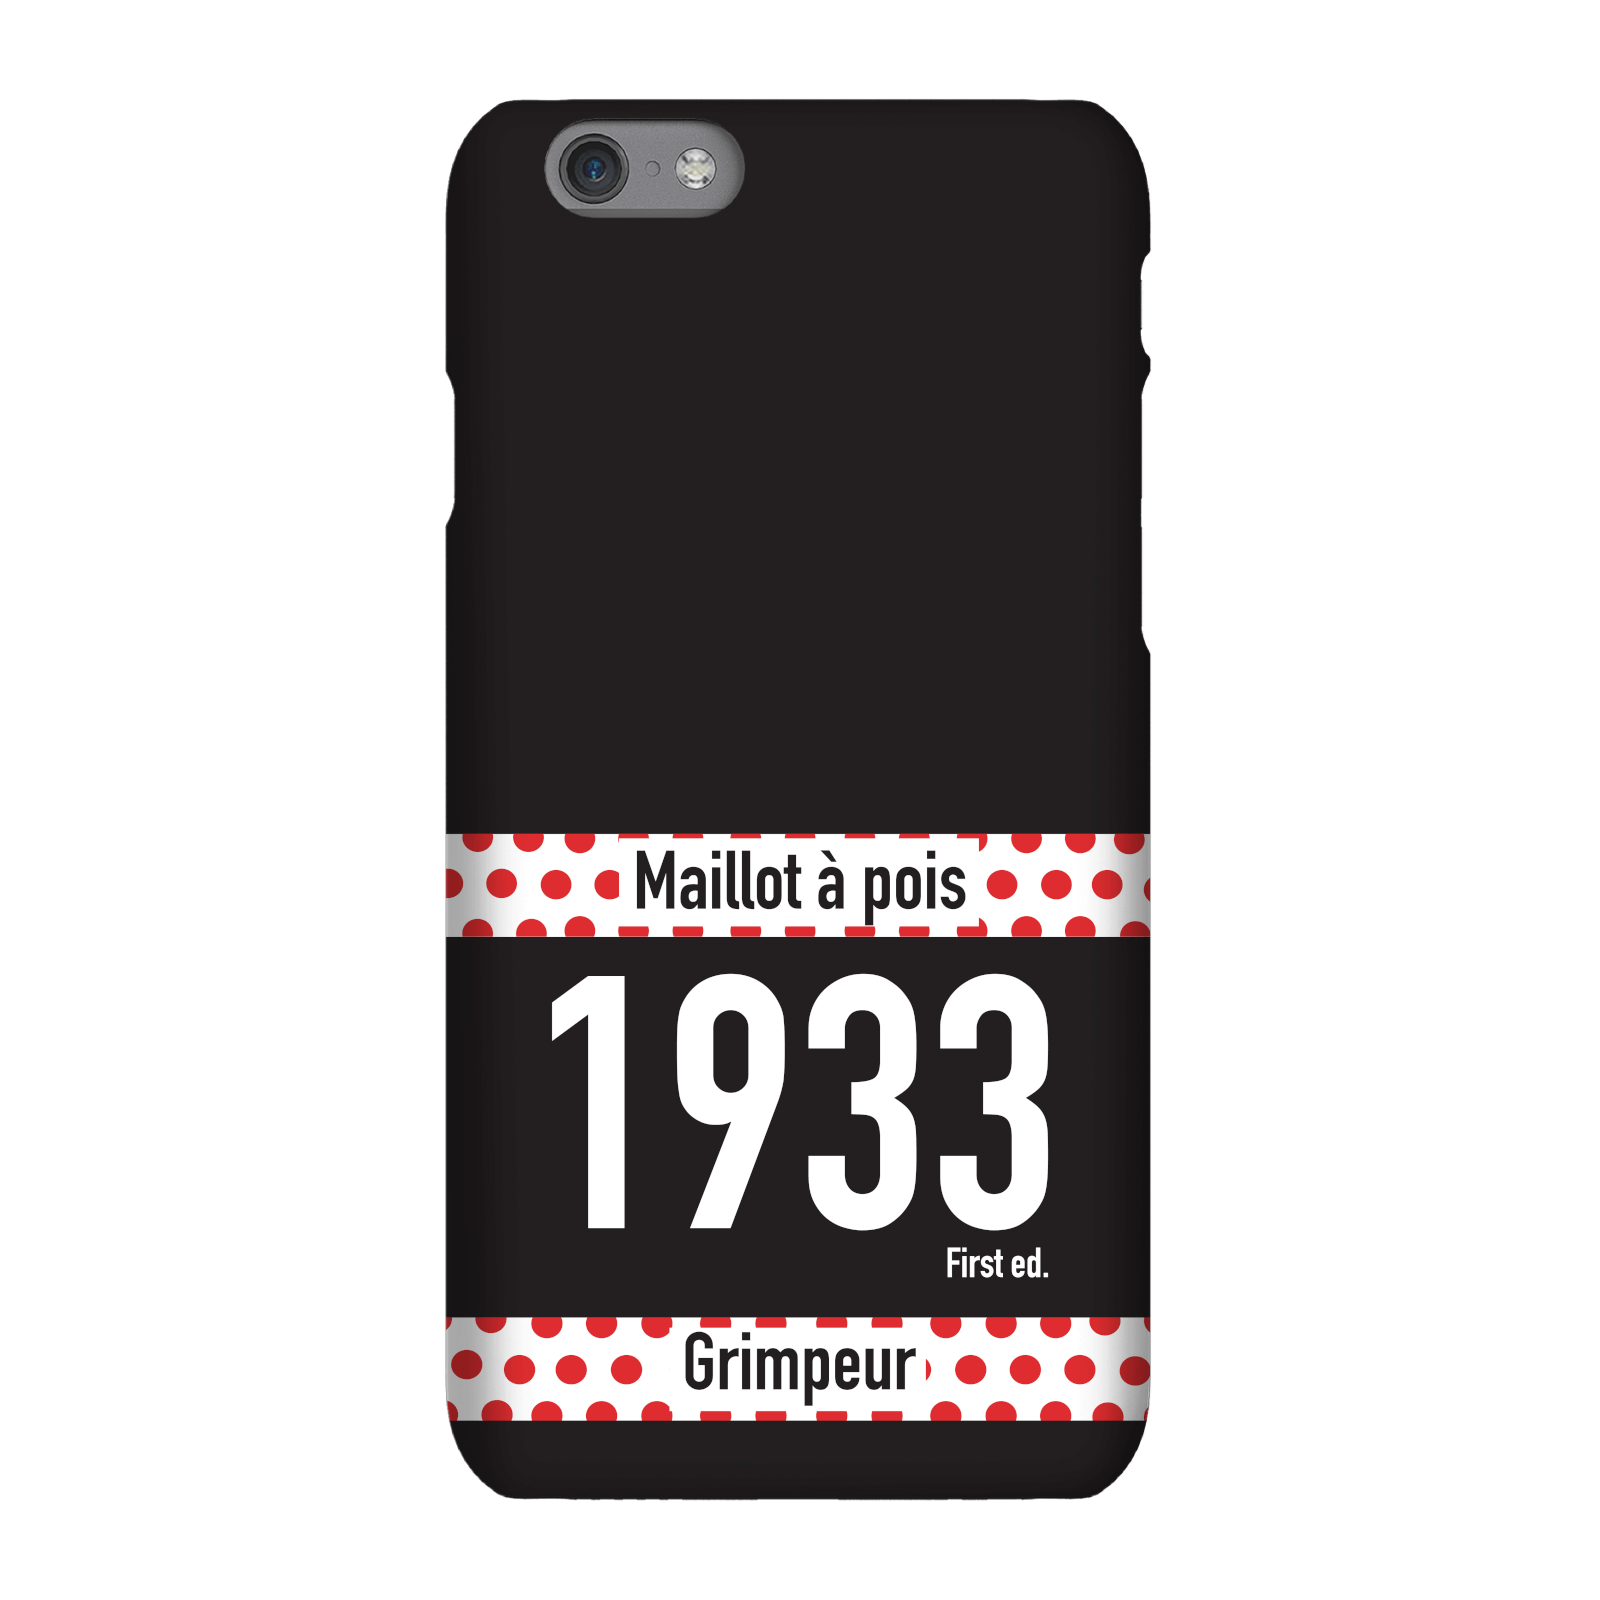 Maillot A Pois Phone Case For Iphone And Android - Samsung S6 - Snap Case - Gloss